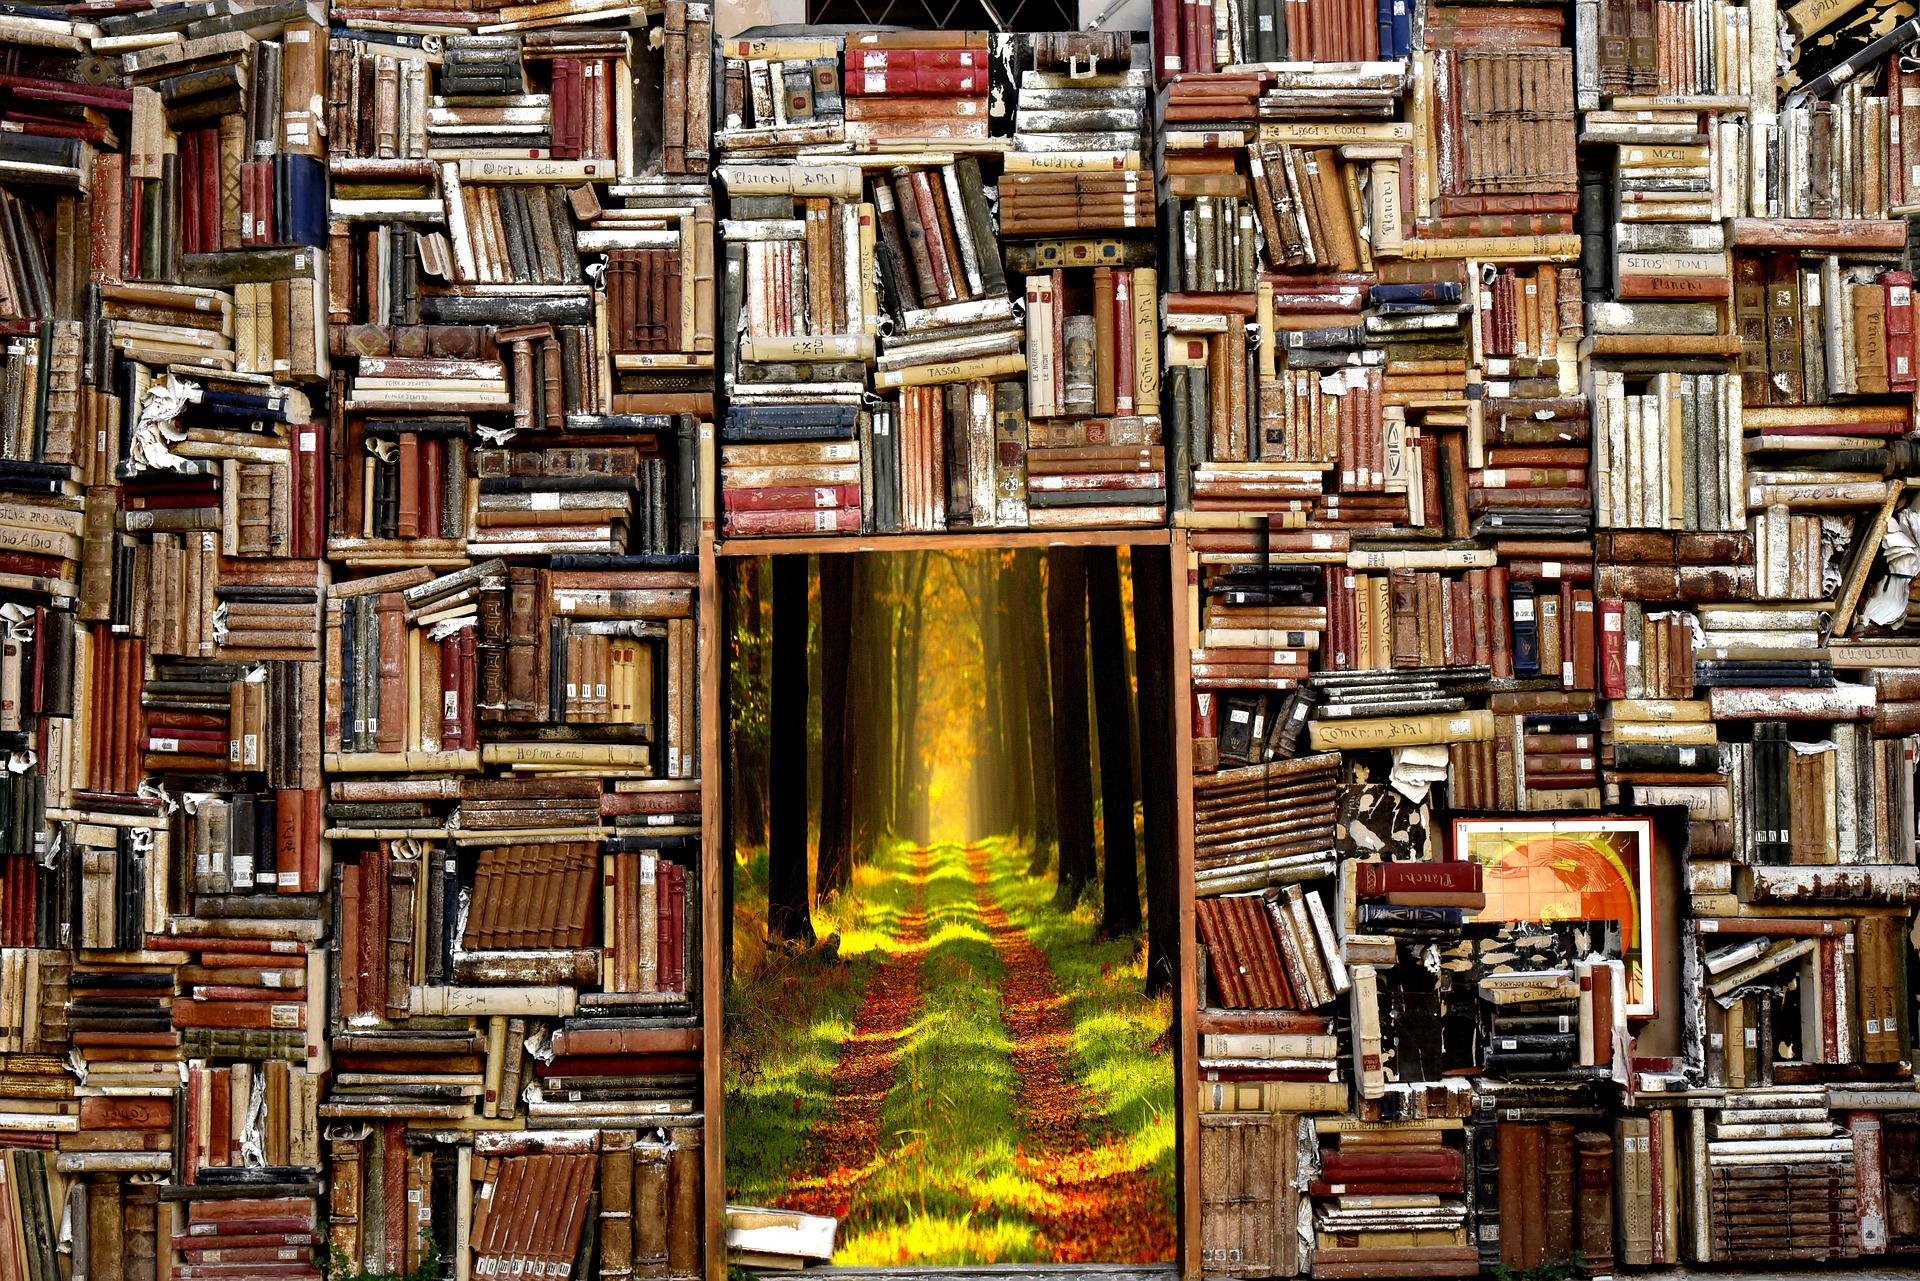 The Books - I write fiction and nonfiction for adults and kid's. A little something for everyone.